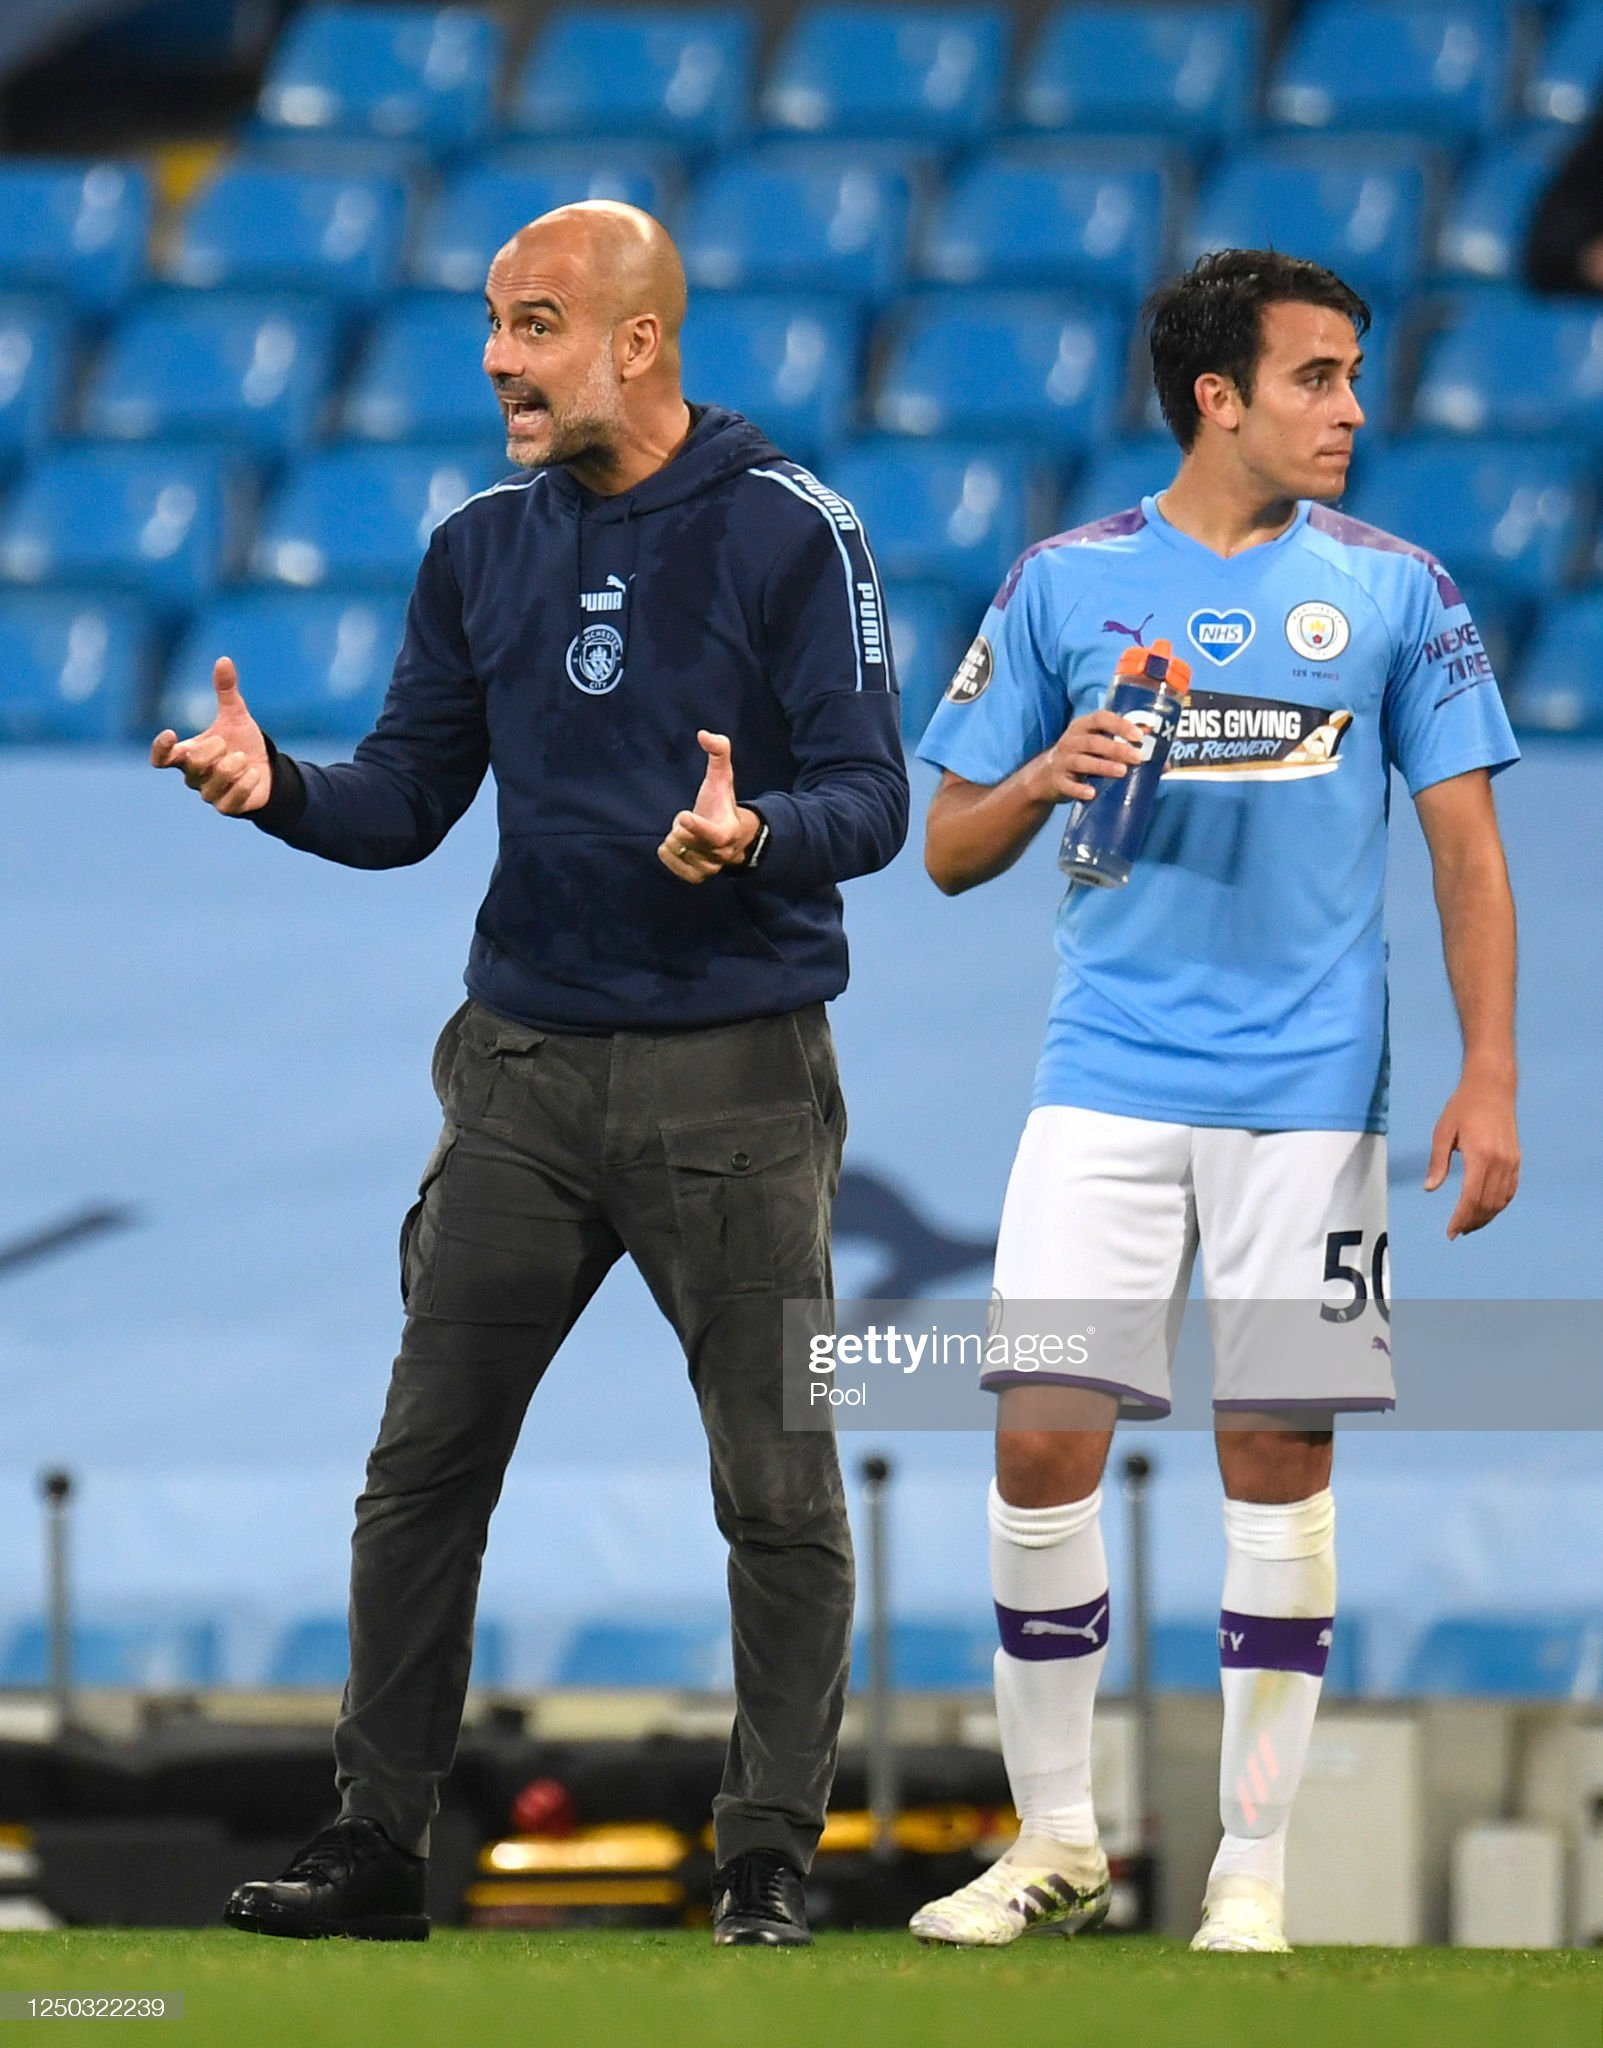 ¿Cuánto mide Eric Garcia? - Altura - Real height Pep-guardiola-manager-of-manchester-city-reacts-as-eric-garcia-of-picture-id1250322239?s=2048x2048